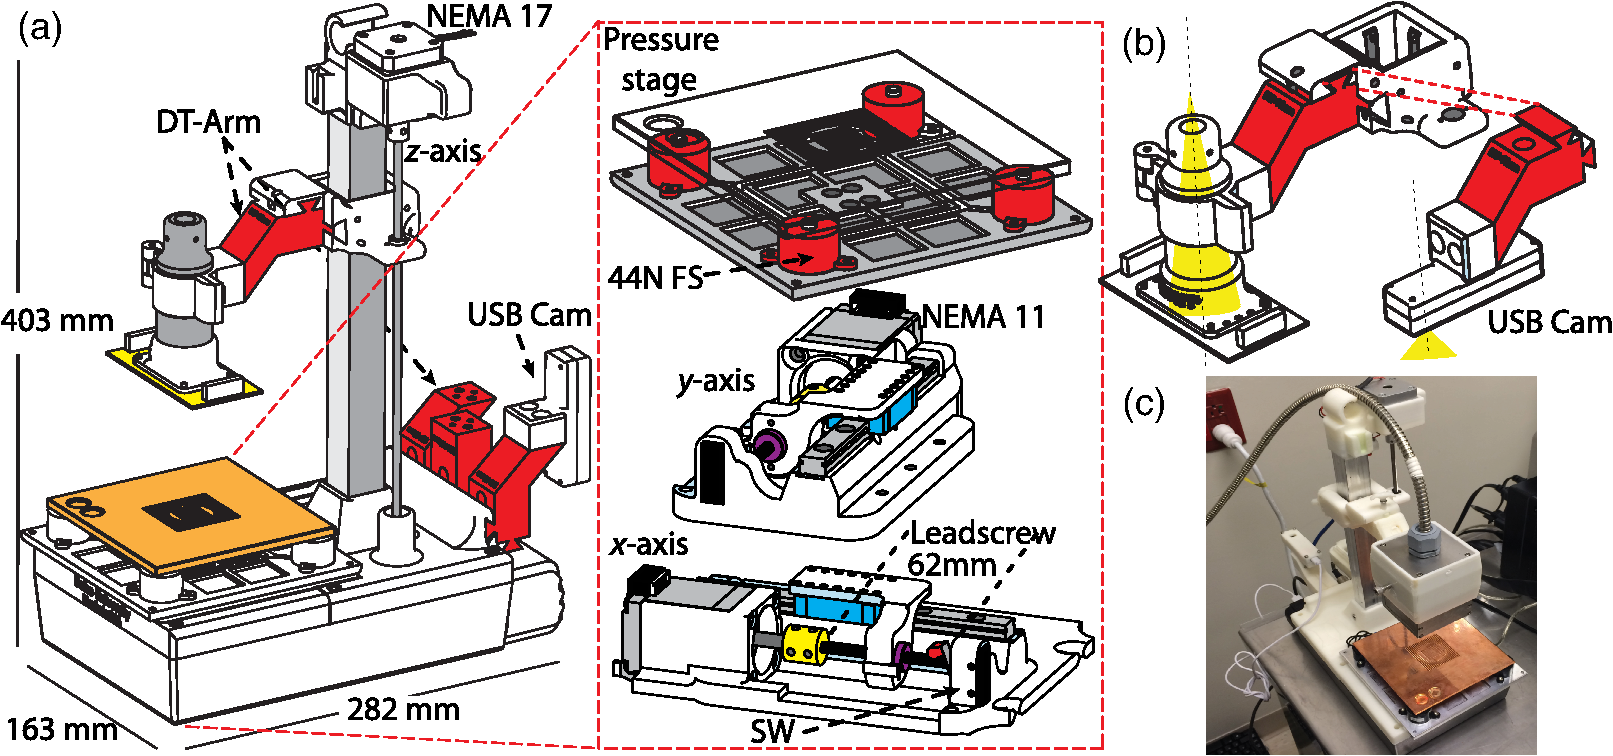 Miniature Spectral Imaging Device For Wide Field Quantitative Parts Diagram Moreover Simple Car Engine Besides Labeled Slot Mechanism That Allows The User To Swap Components Without Tools And C A Digital Image With Platform Just Prior Clinical Use